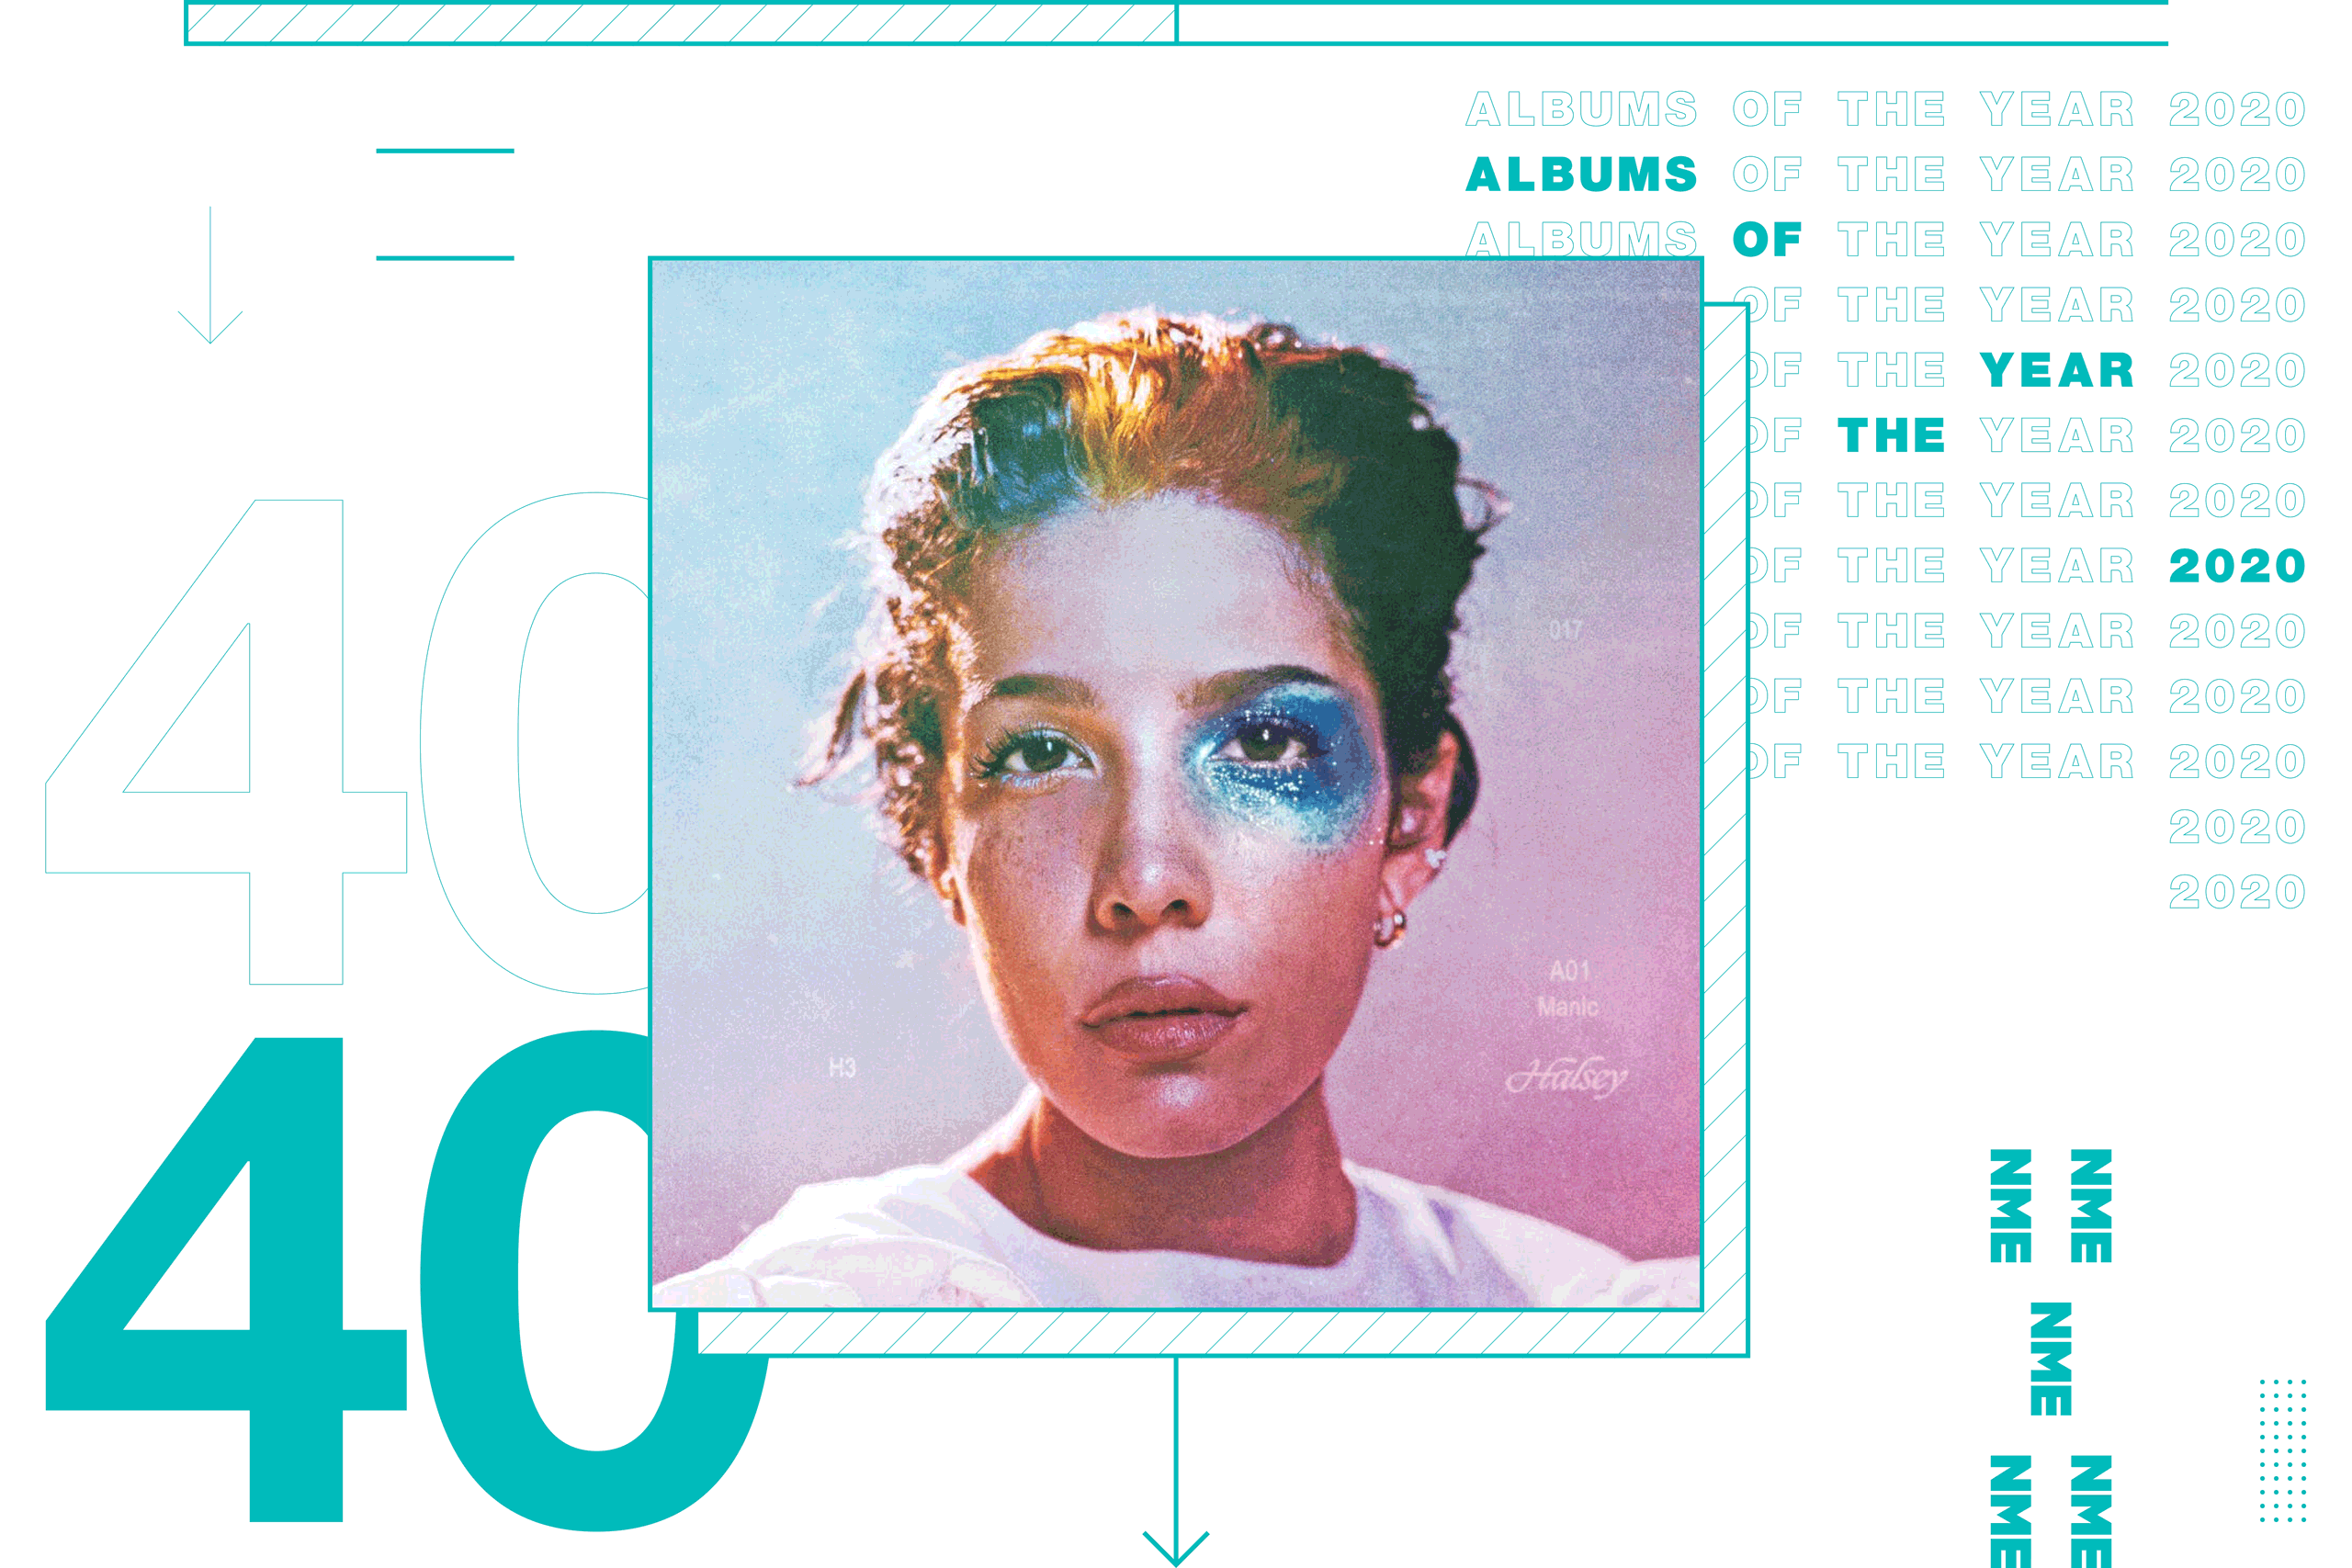 NME Album Of The Year 2020 Halsey, 'Manic'